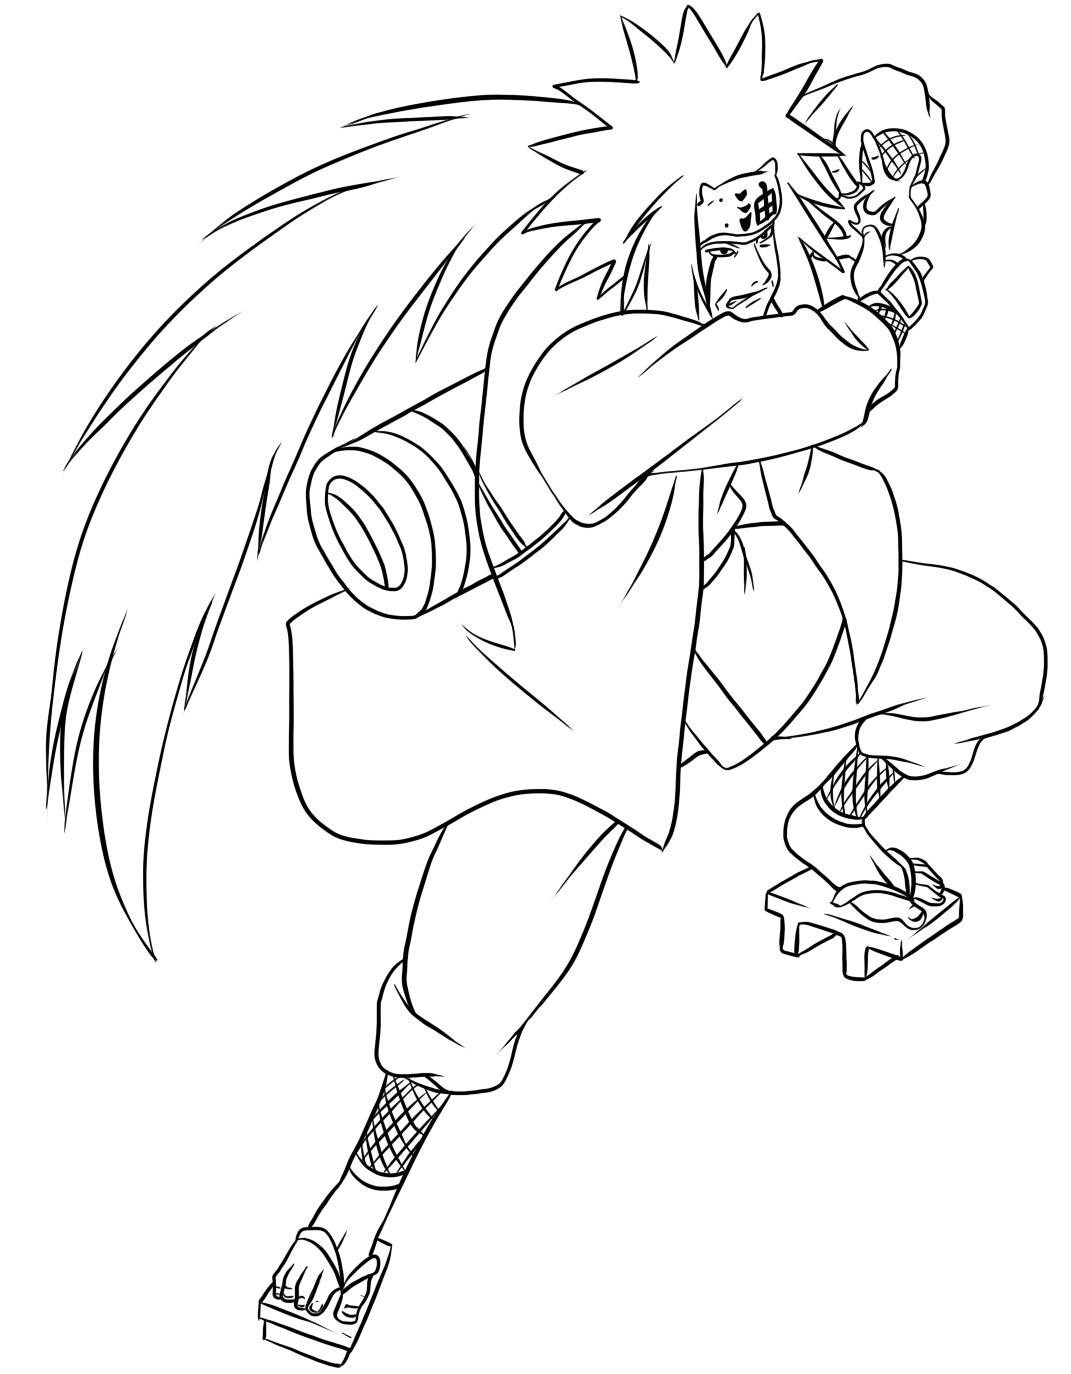 Anime Naruto Coloring Pages Fascinating Naruto Coloring Pages Free Printable For Kids In Naruto